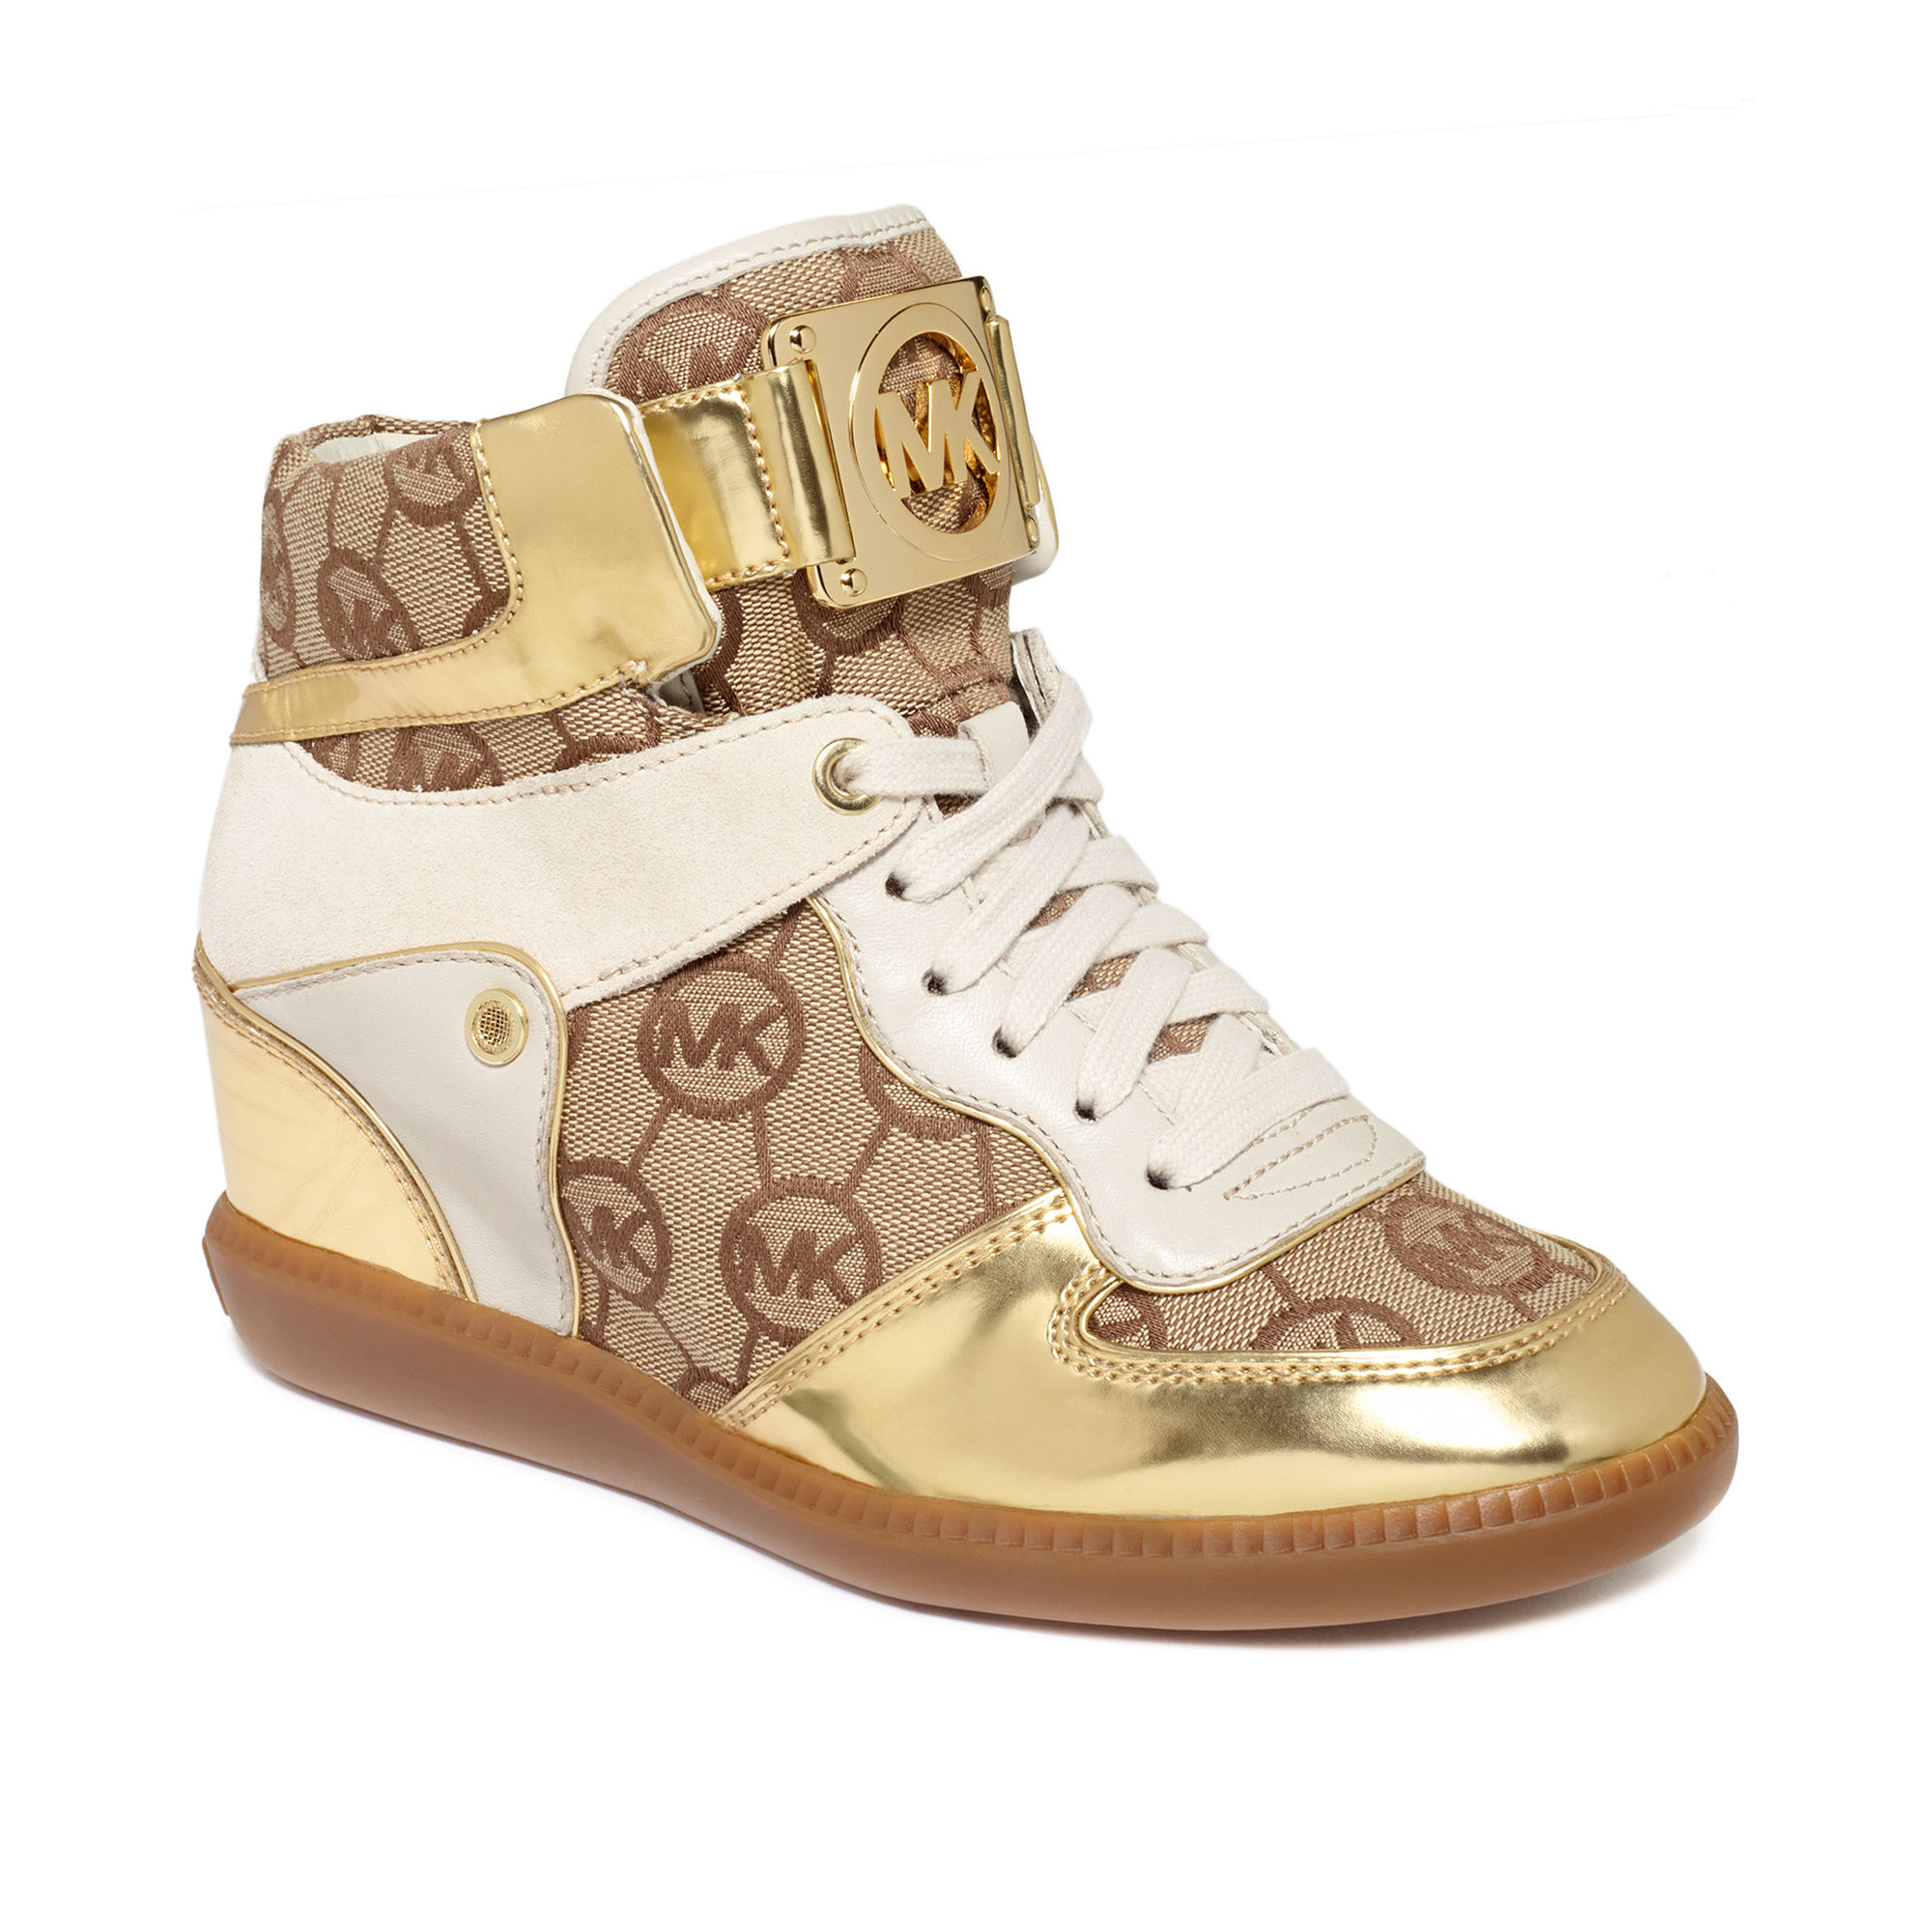 lyst michael kors nikko high top wedge sneakers in metallic. Black Bedroom Furniture Sets. Home Design Ideas